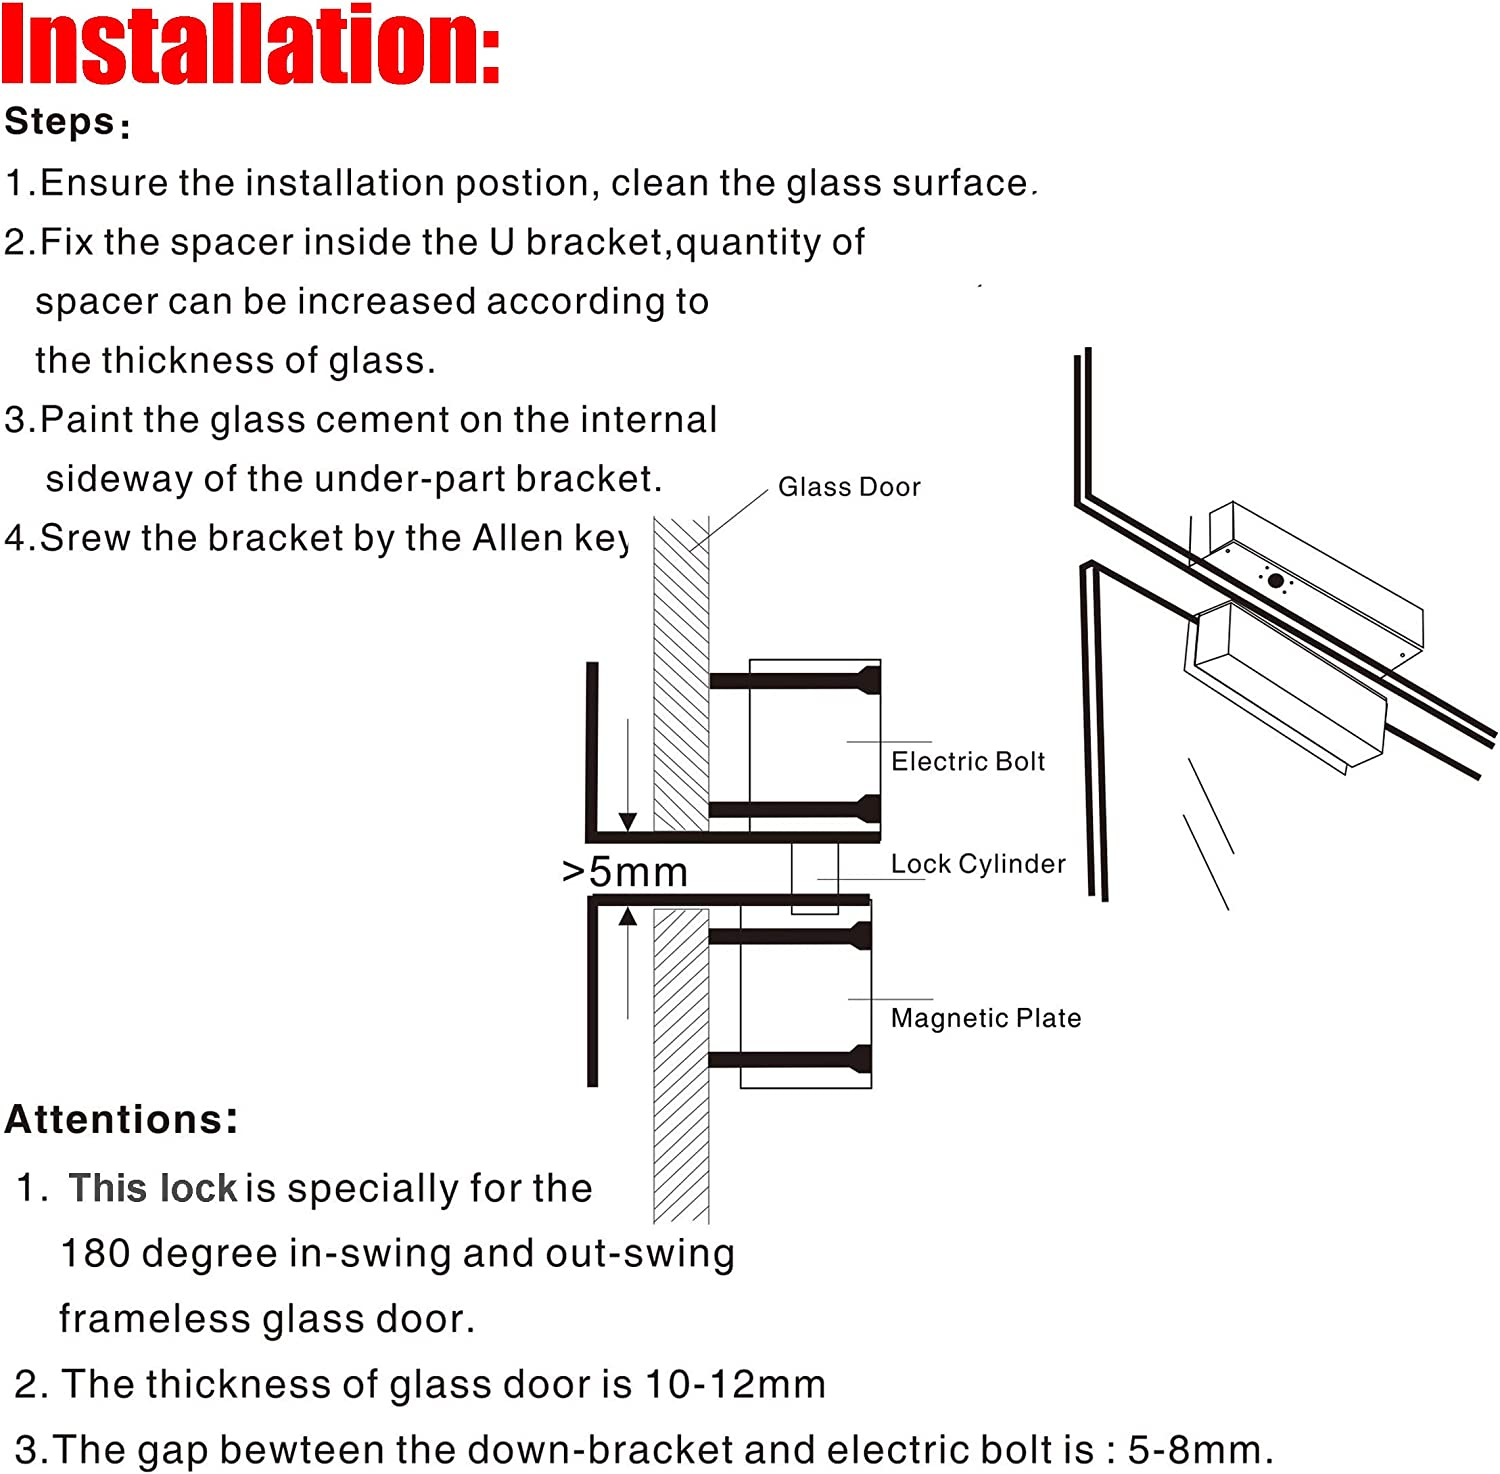 Electric Bolt Lock For Frameless Glass Door Left-open With Feedback Signal Home & Kitchen